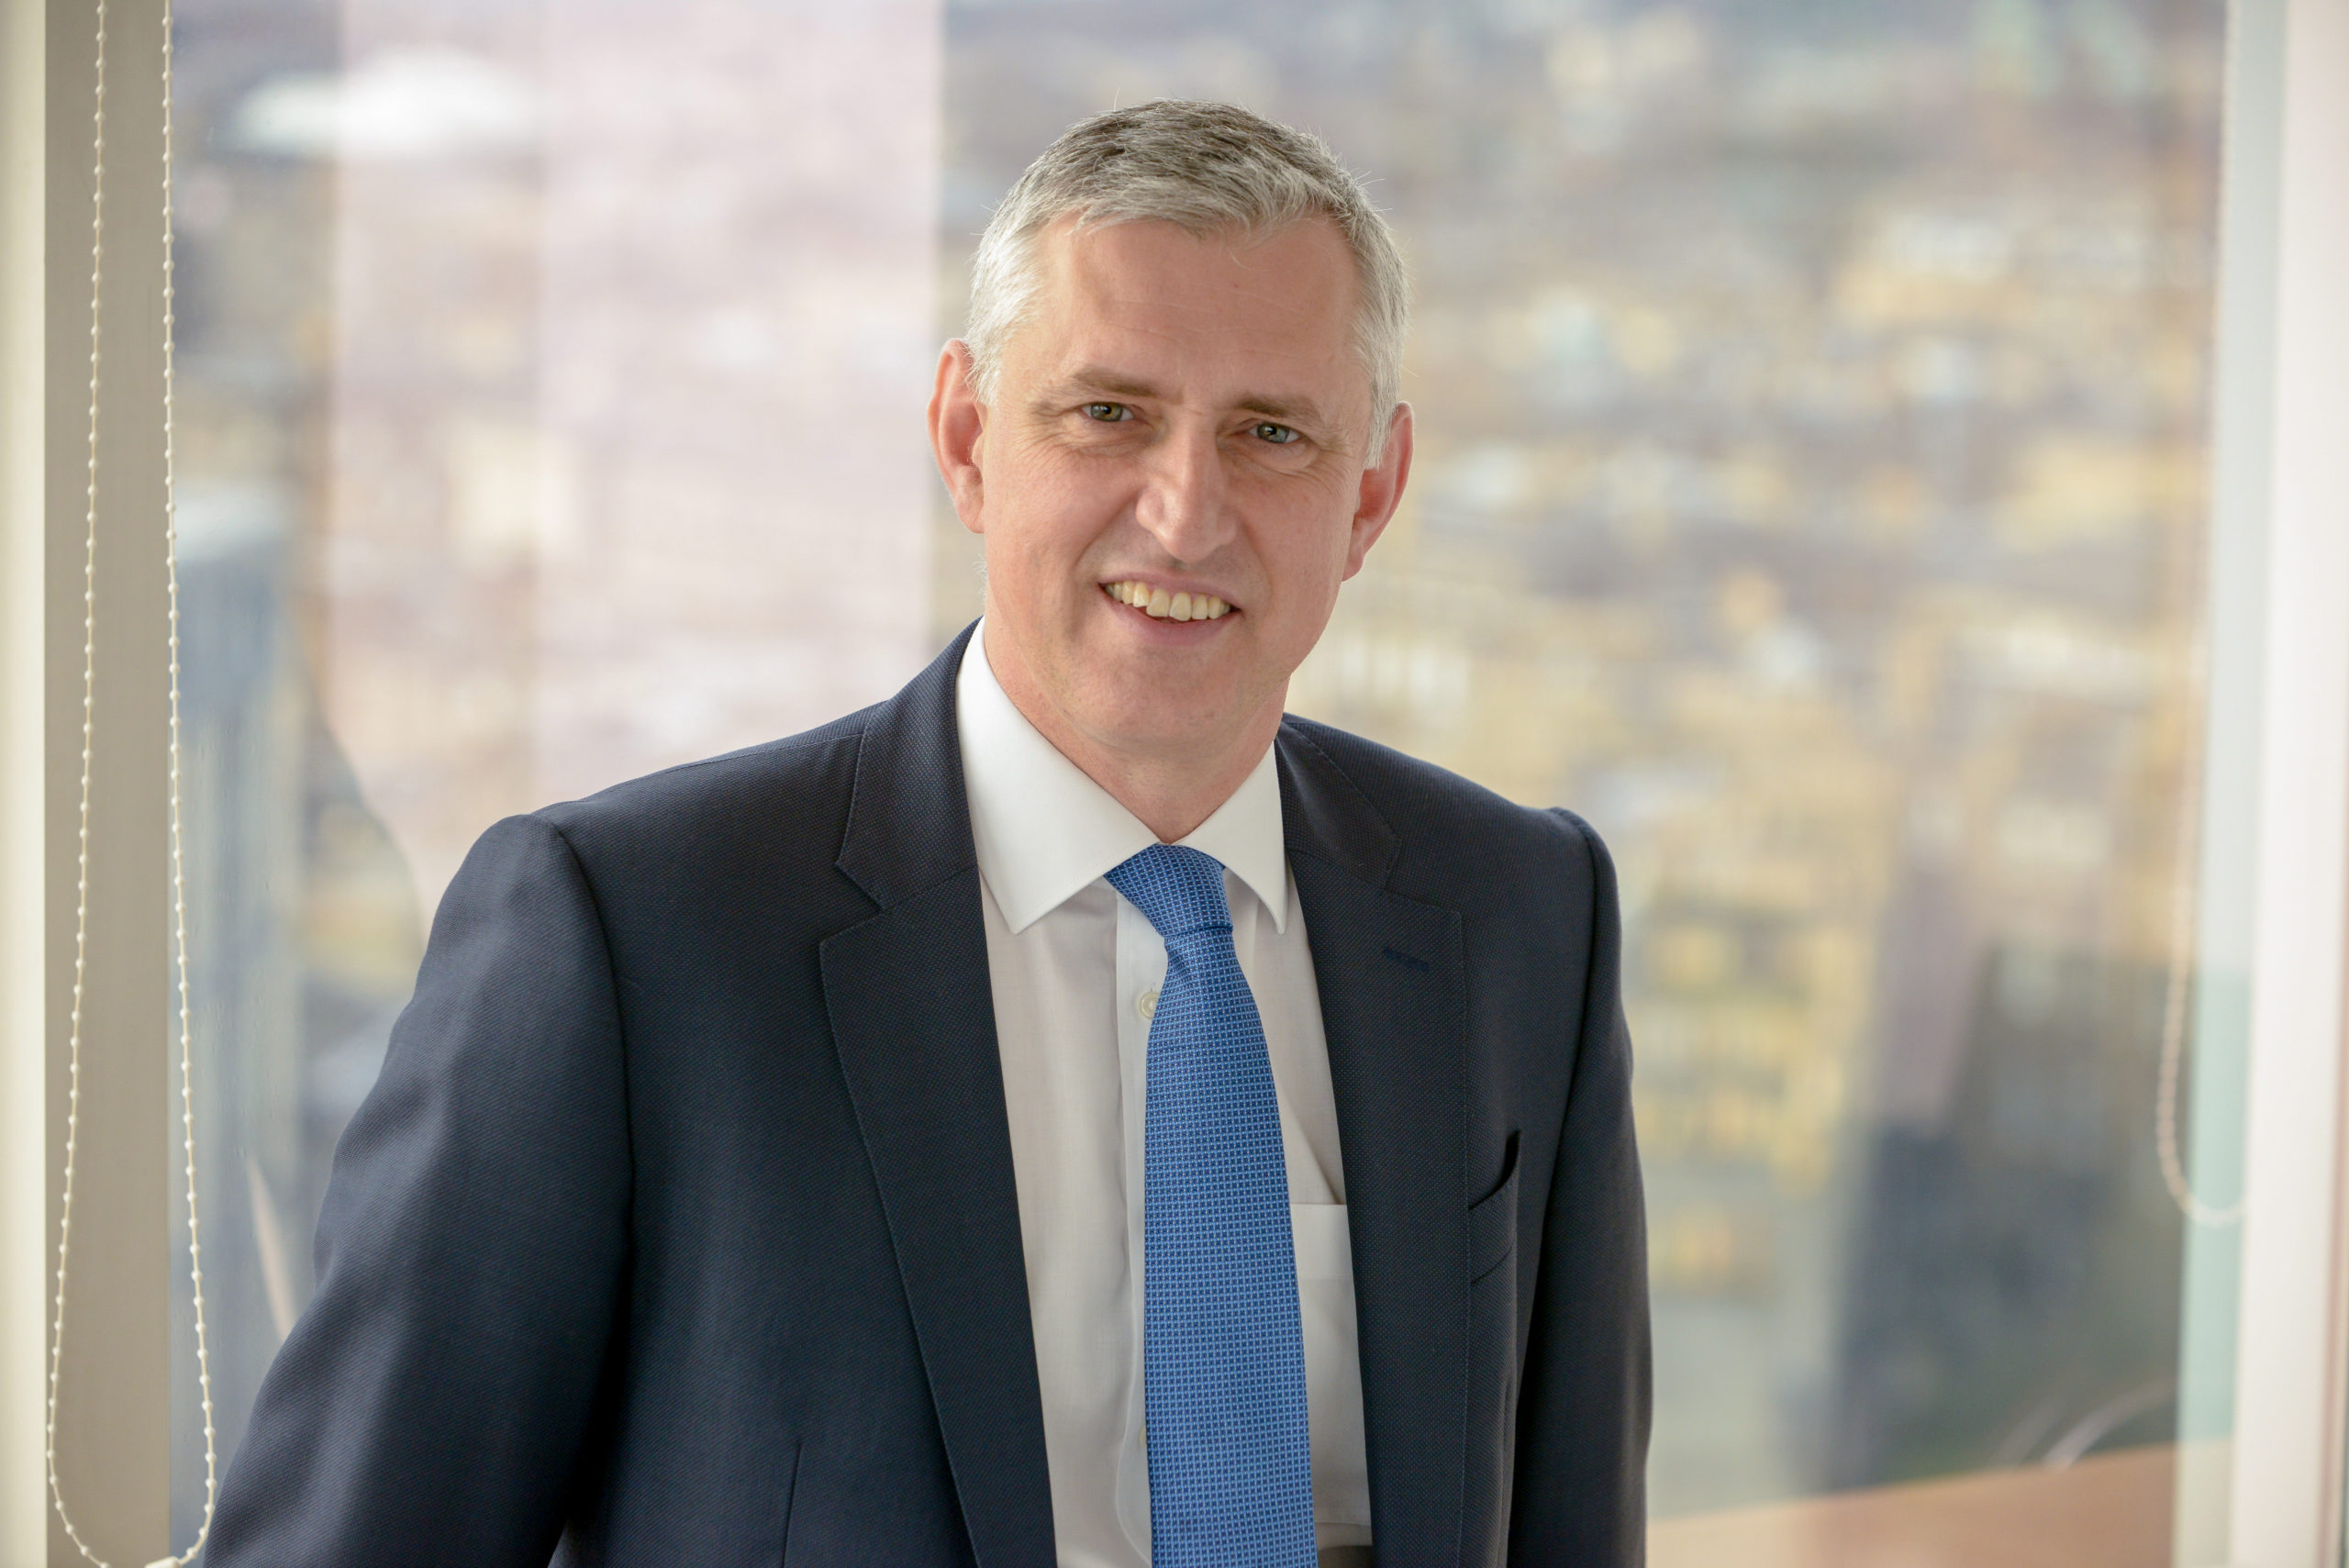 David McEwing, partner, Addleshaw Goddard